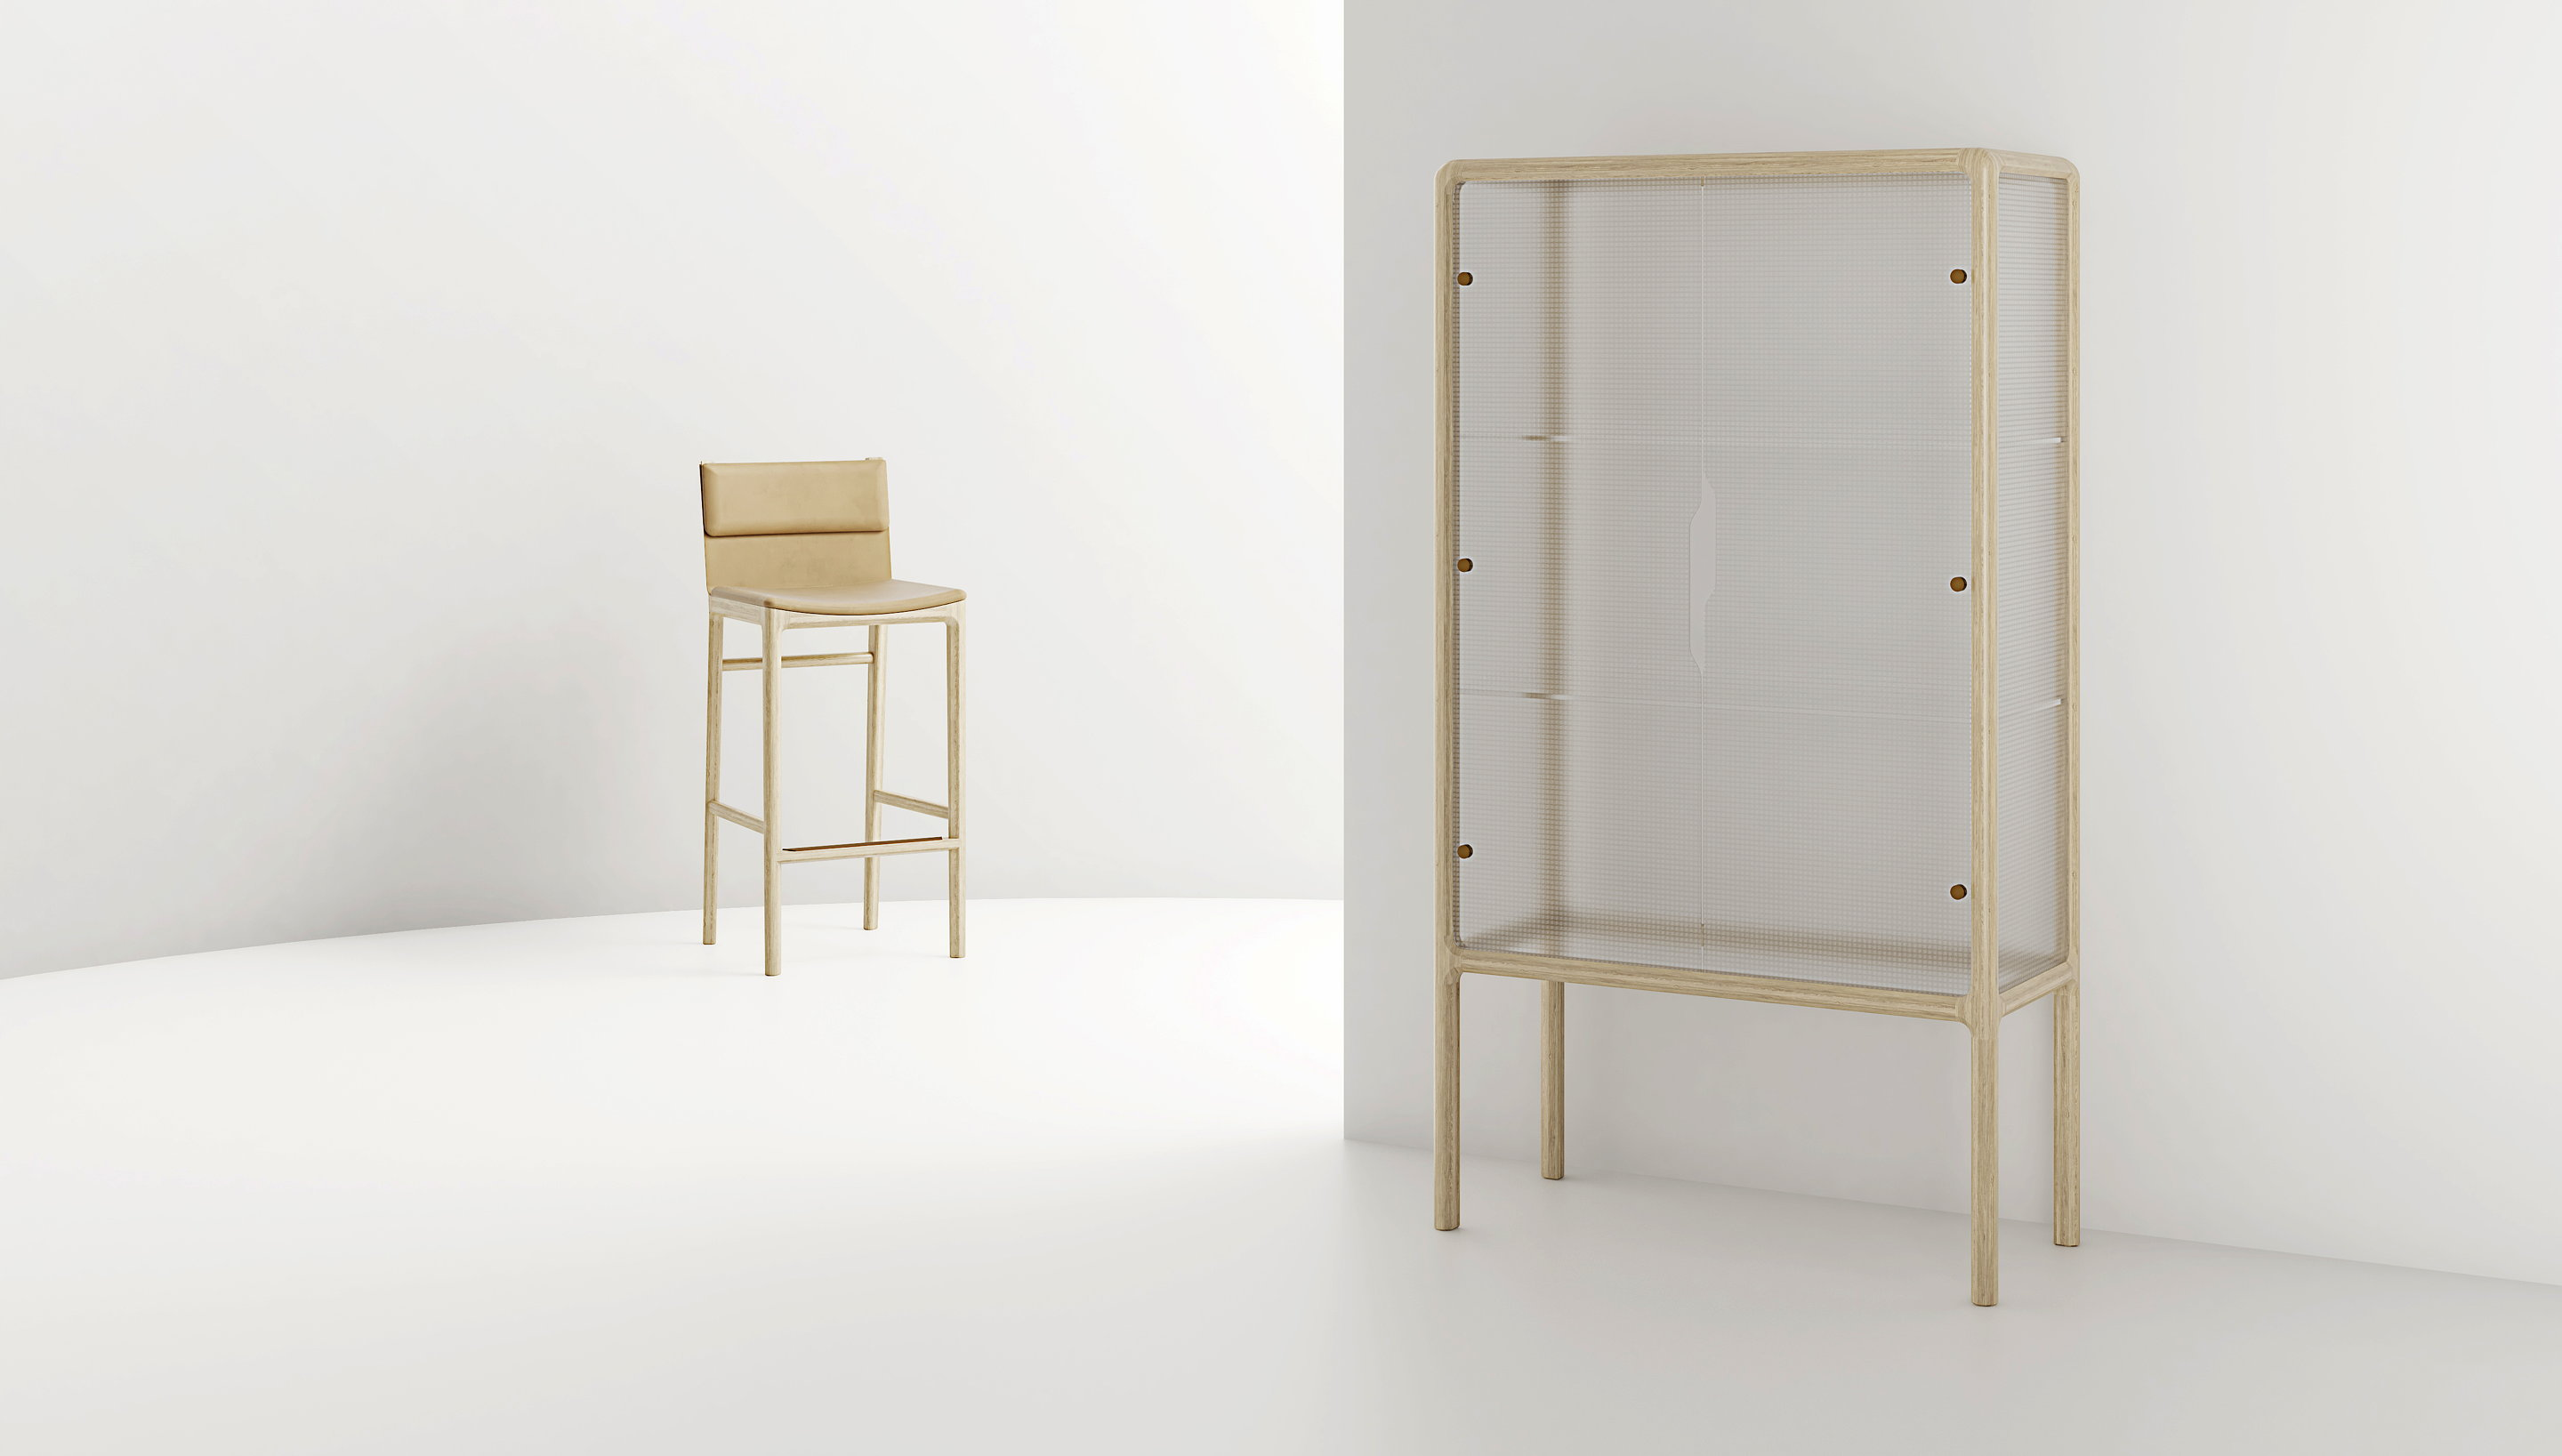 Astounding Stellar Works Launches The Taylor Collection By Yabu Pushelberg Ibusinesslaw Wood Chair Design Ideas Ibusinesslaworg